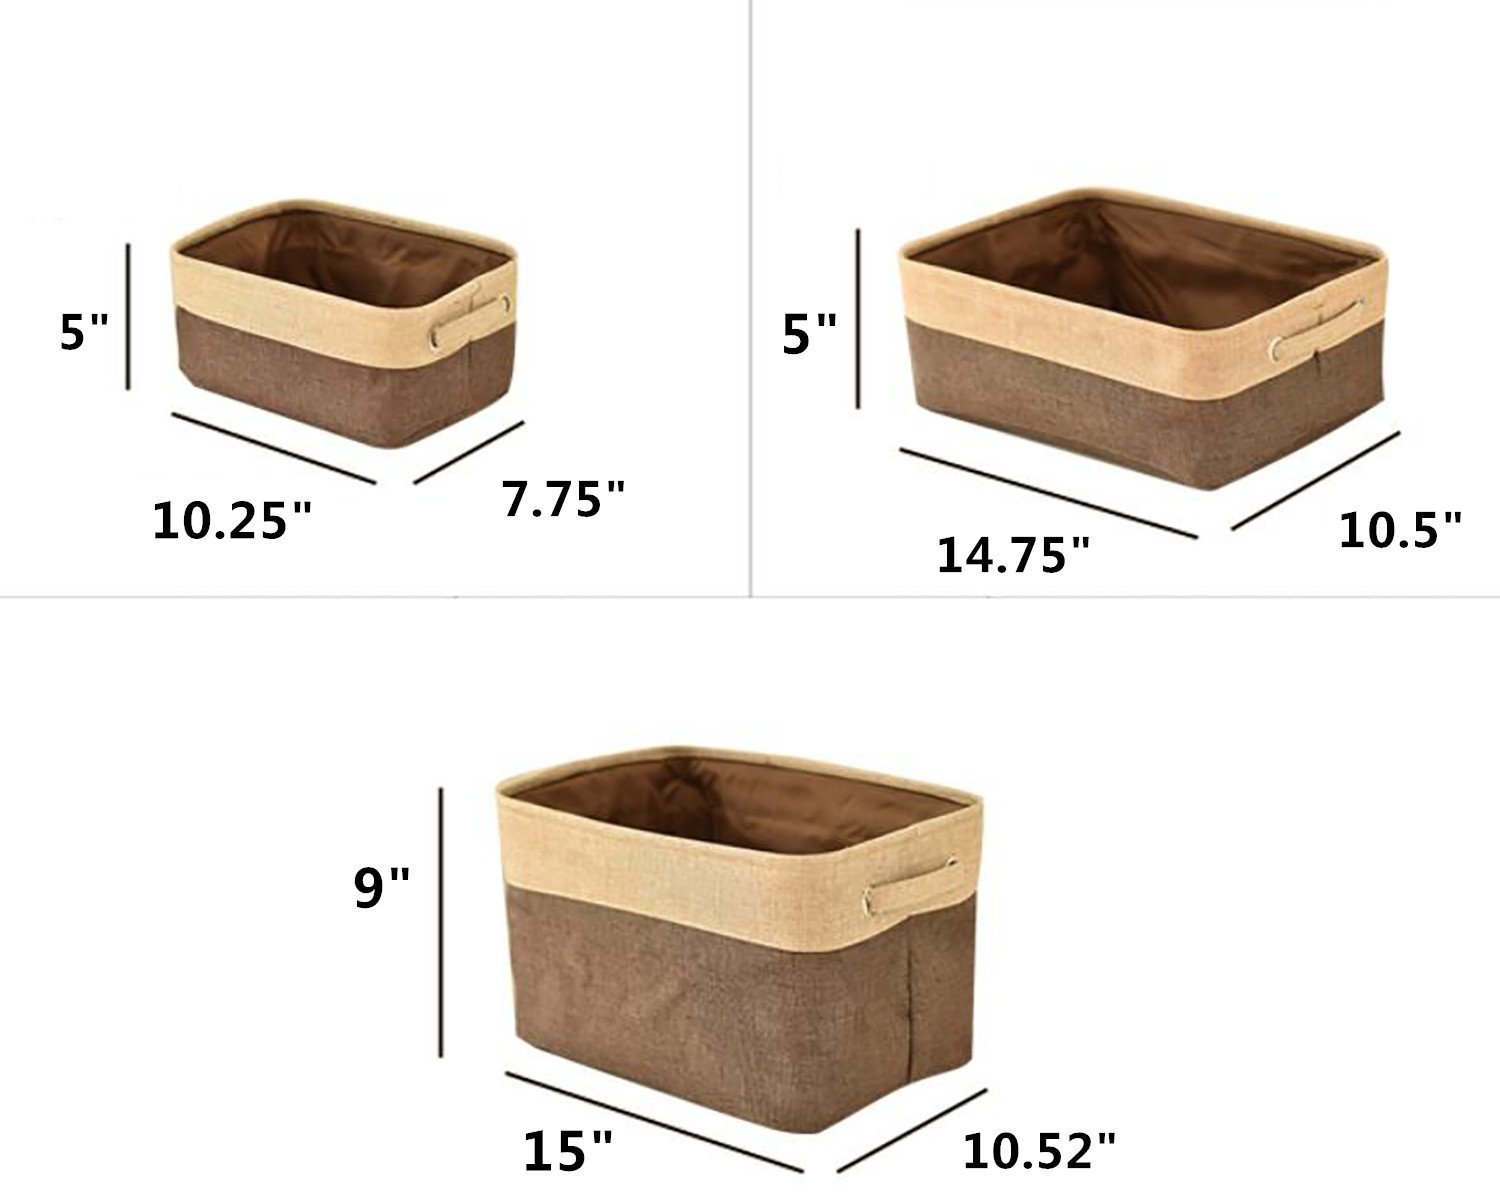 Leoyoubei Canvas Fabric Collapsible Cube Bin Set with Handles Storage Bin Organizer Basket Toy Organizer Hampers,Pet Toy Storing,(L M S) 3-Pack for Home Office Closet,Double Layer Fabric Brown/Beige - Uses: Products can be used for debris storage, clothing storage, multi-functional products. thick/large Handle for easy slide in and pull out of shelves or cabinet,Collapsible for easy storage if not in use. Children's storage bags can be hung on the walls, Protects contents against moisture and dirt. Also suitable for waste sorting. - living-room-decor, living-room, baskets-storage - 61BOJLDnIlL -